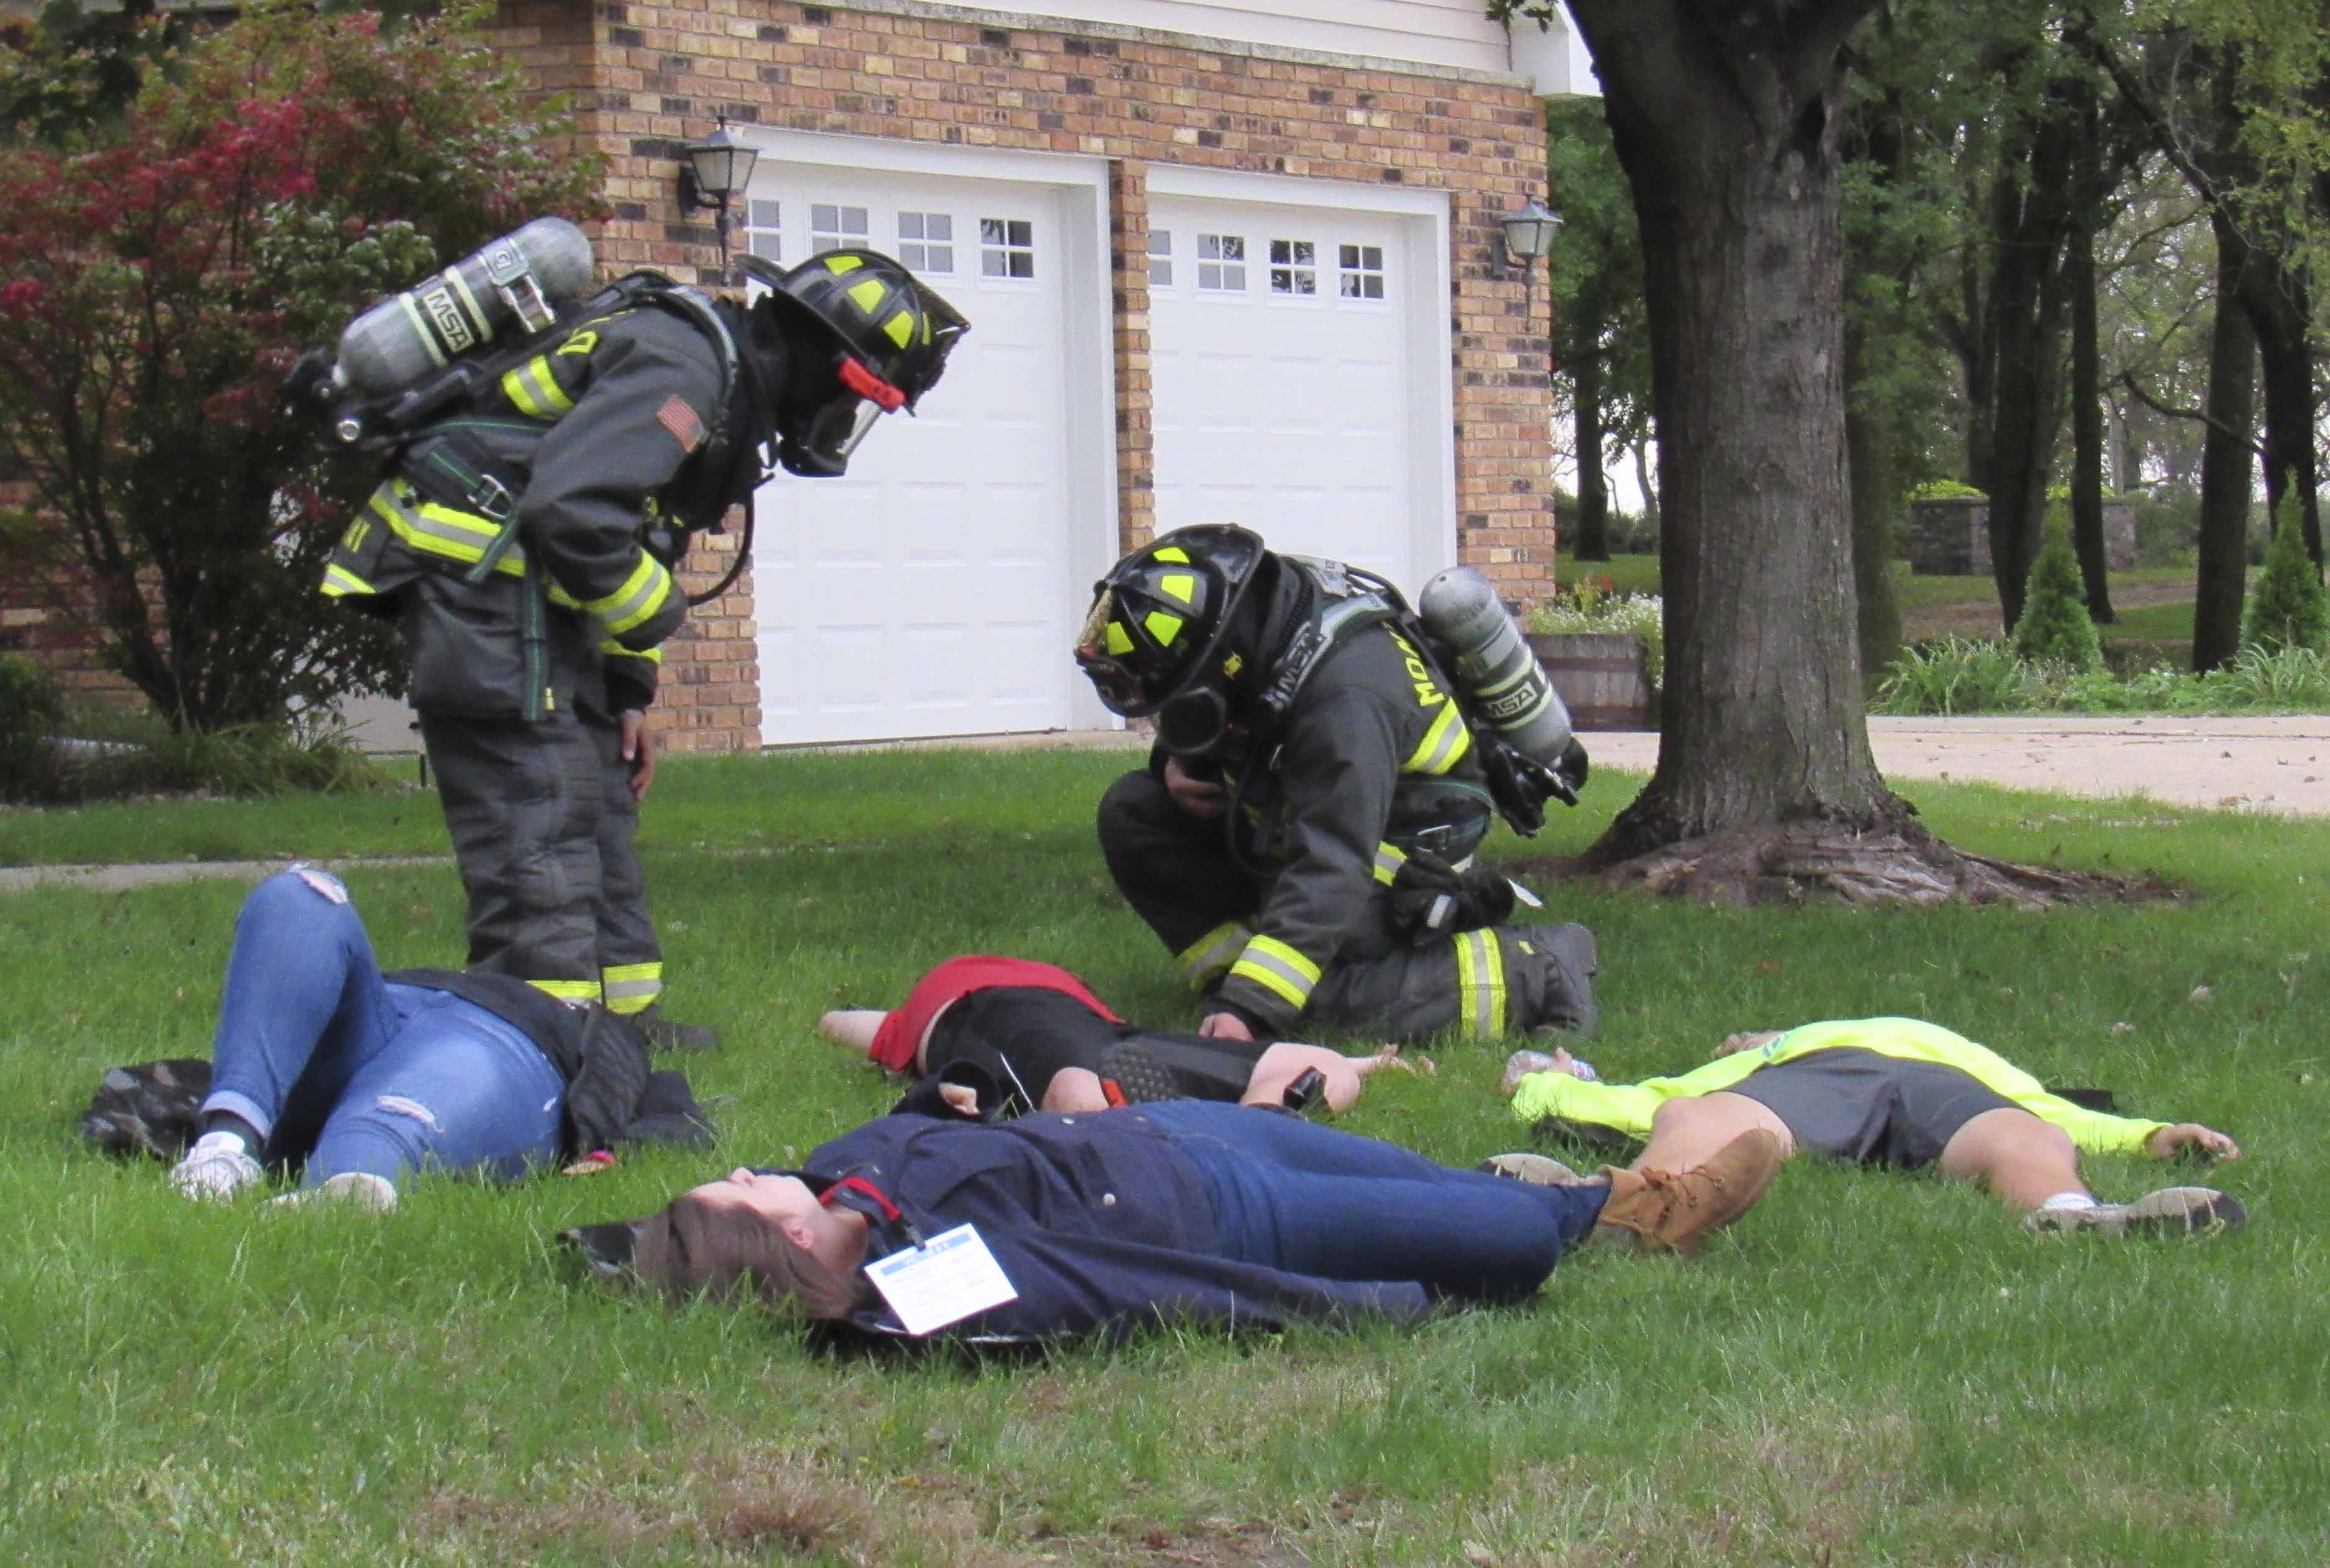 Monticello Firefighters Josh Kray and Nick Spahr inspect the scene of a chemical spill as a family lies on the front lawn of a house on Songbird Lane. On Oct. 2, several public safety agencies from Jones County came together near Monticello High School for a hazmat training exercise. The scenario revolved around a semi truck full of chlorine that overturned on Highway 151. Those who volunteered as the family members include Olivia Goodyear, Keegan Freese, Grahm Schneiter, and Allison Leonard.